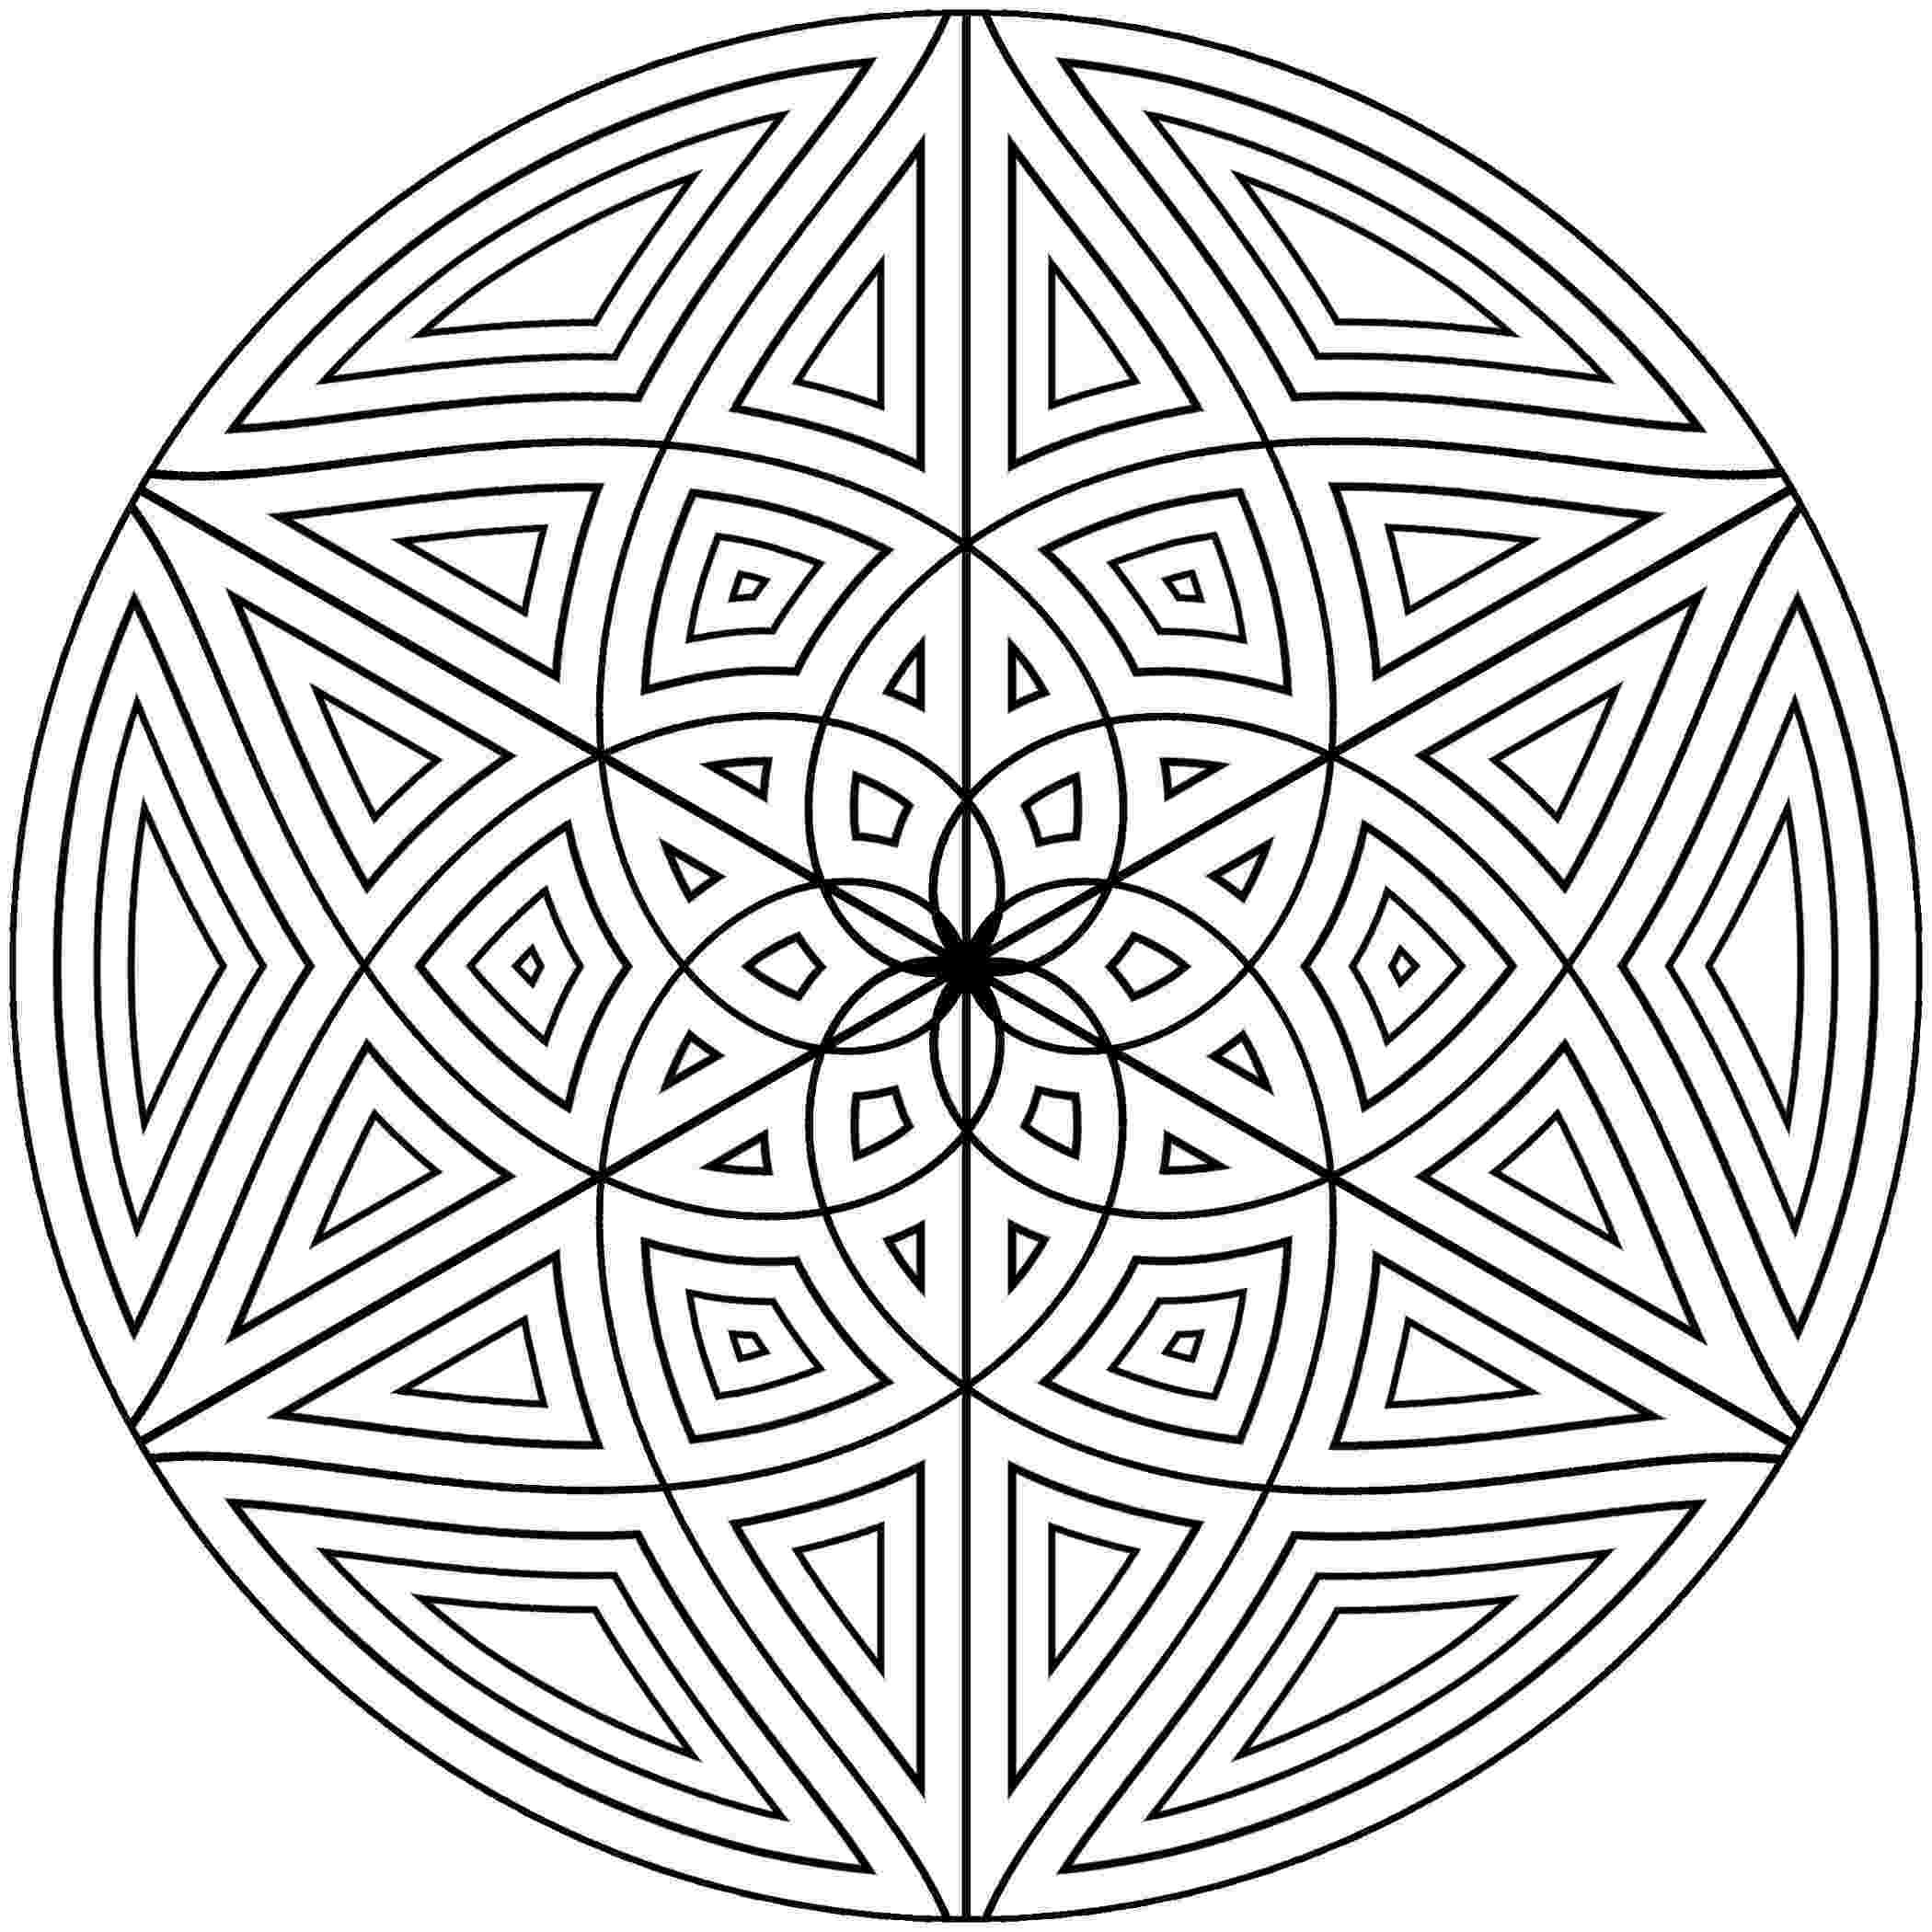 free coloring pages with designs cool geometric design coloring pages getcoloringpagescom with free designs coloring pages